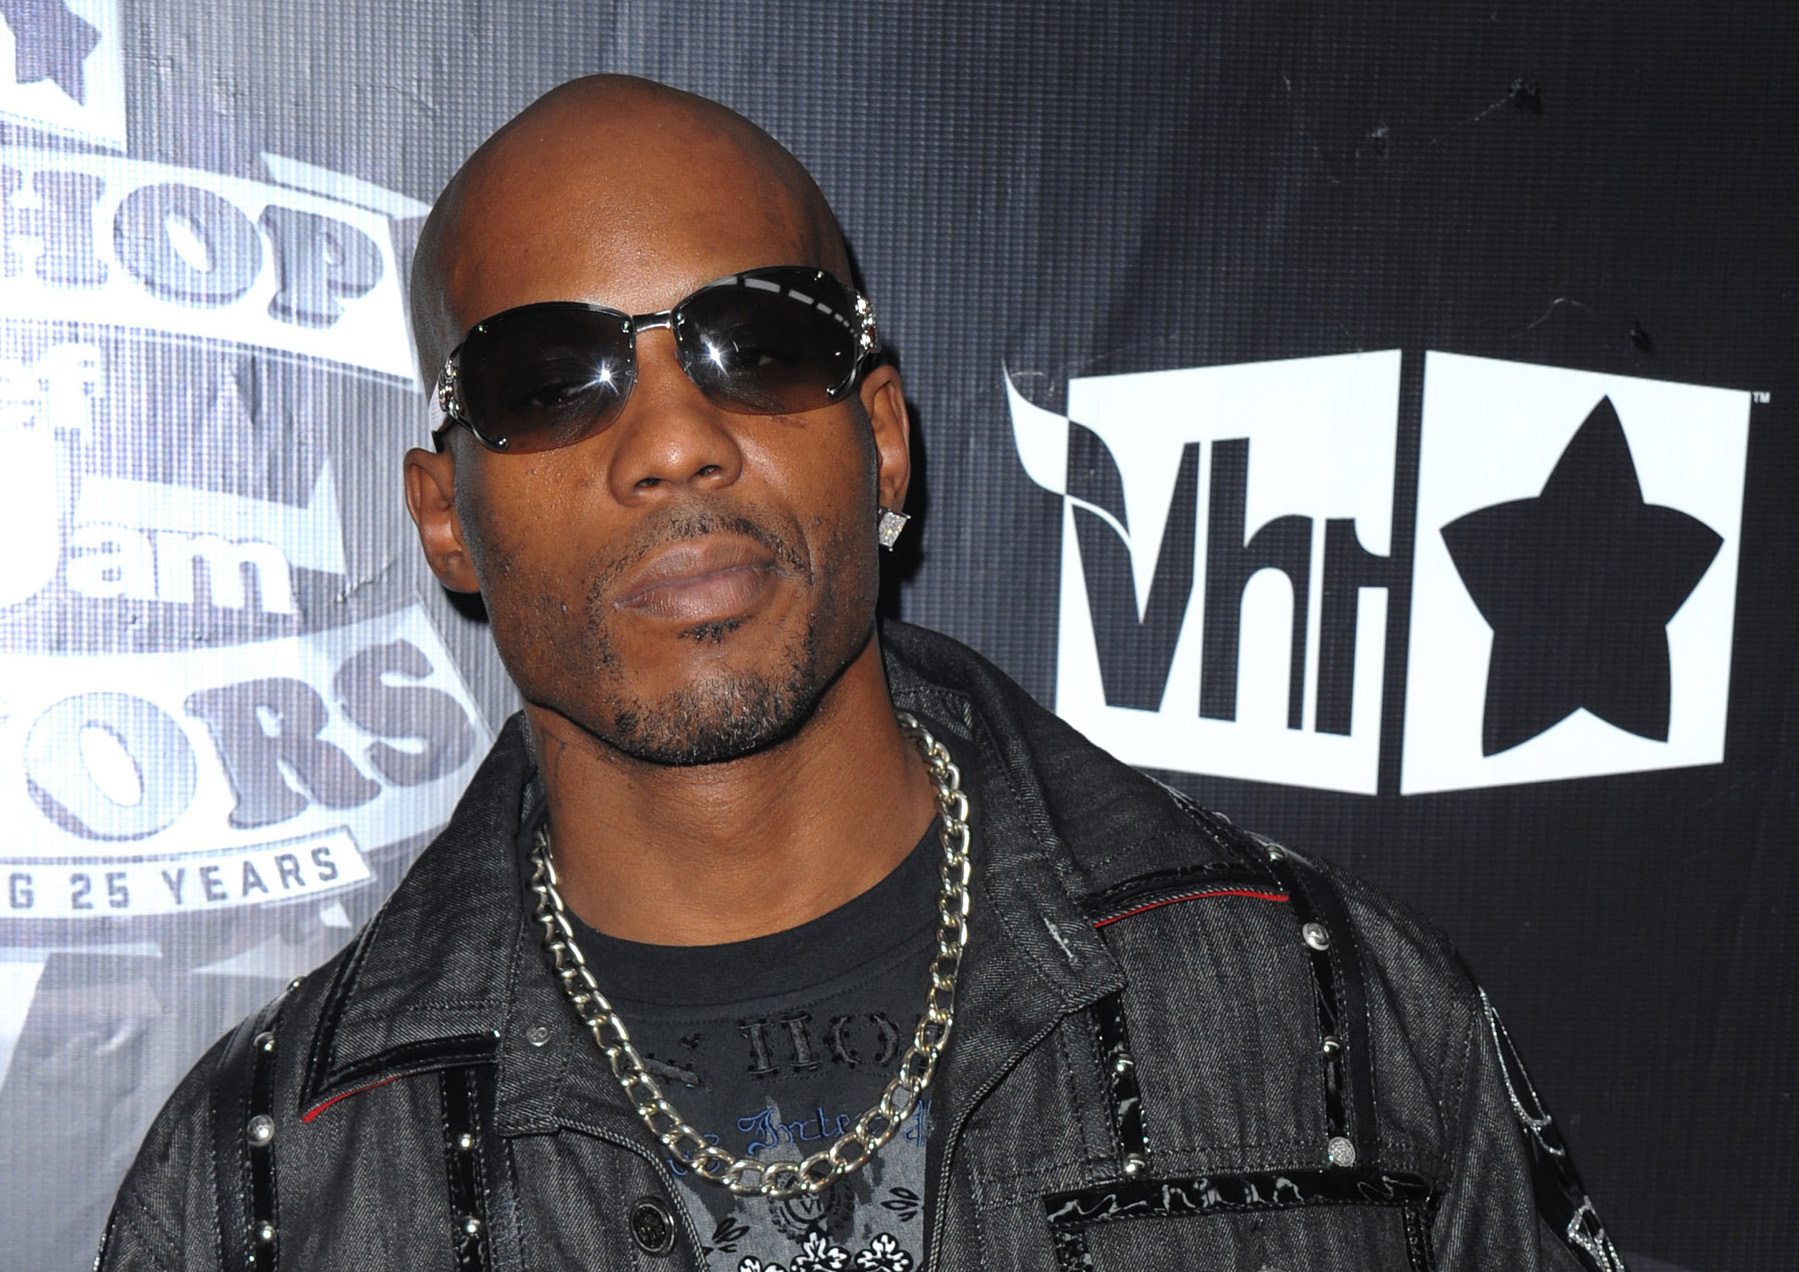 In this Sept. 23, 2009, file photo, DMX arrives at the 2009 VH1 Hip Hop Honors at the Brooklyn Academy of Music, in New York. The rapper died Friday at age 50.